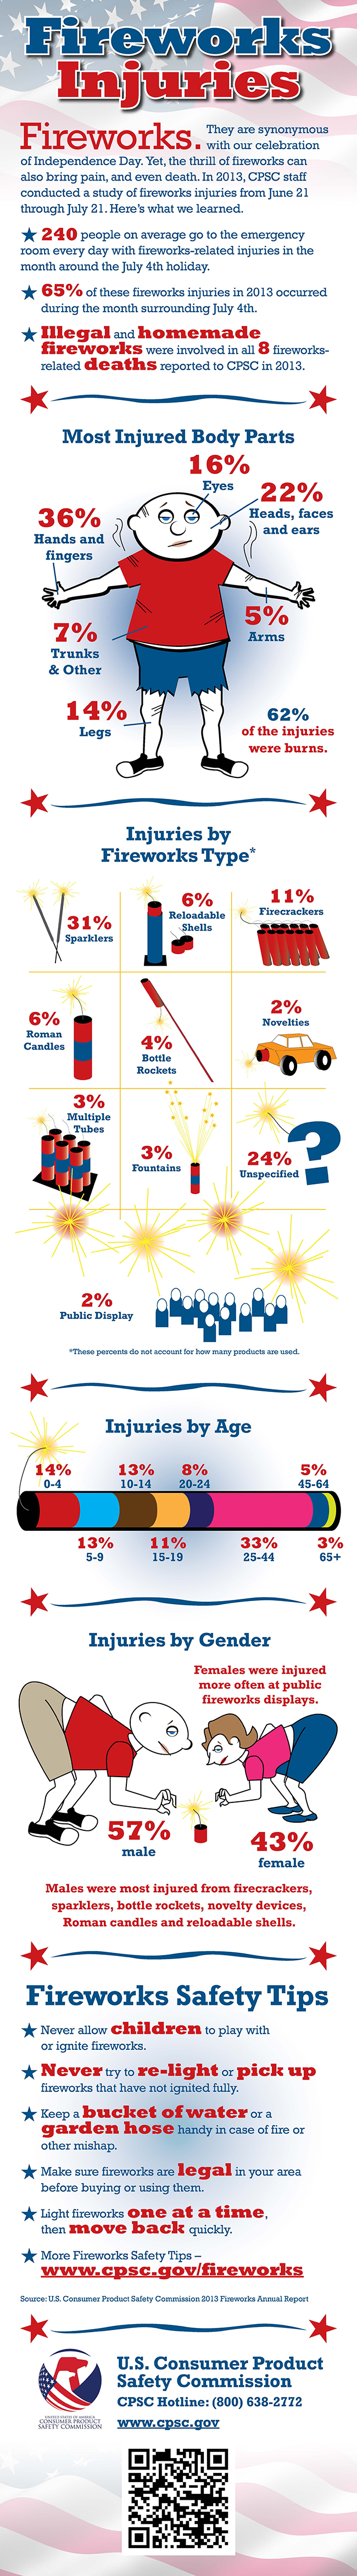 firework-safety-infographic-original_650